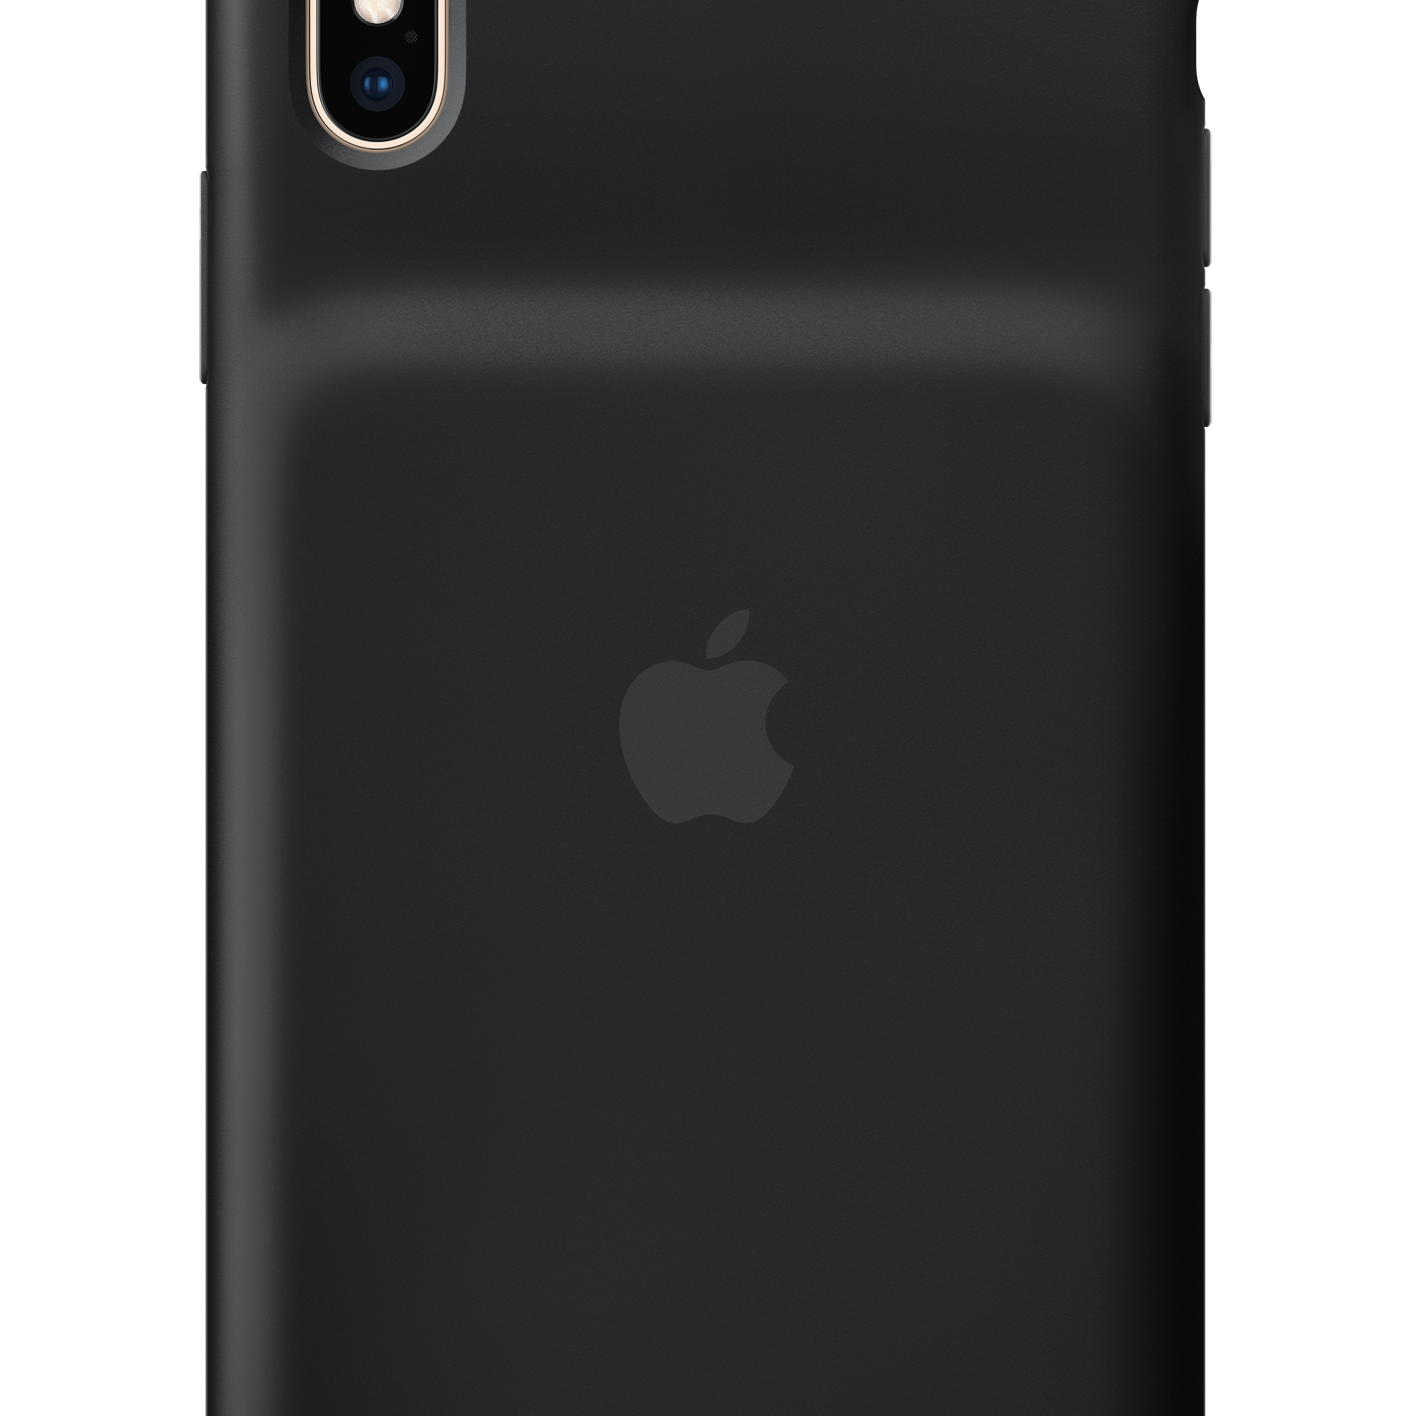 Apple's new iPhone  XS Smart Battery Case. The rear hump houses the battery.